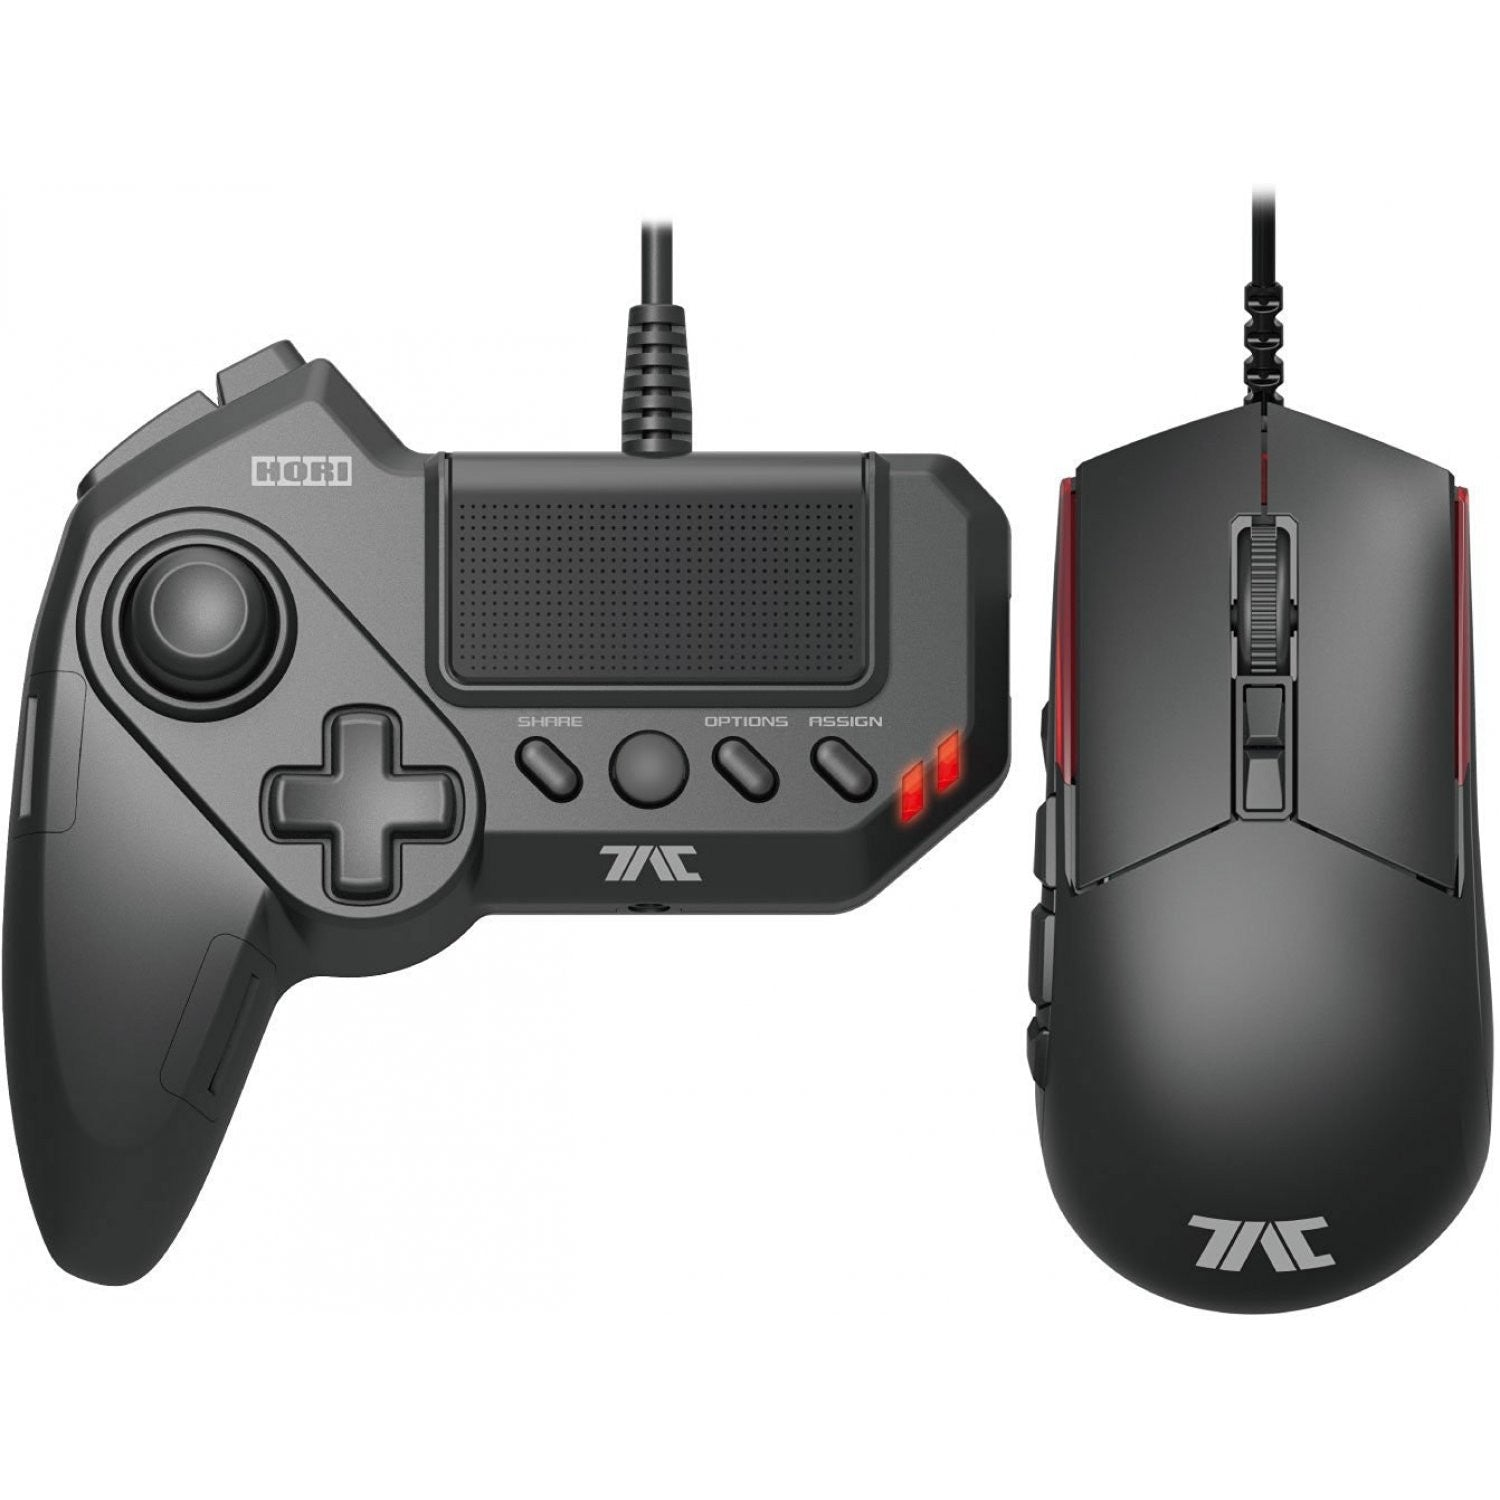 Hori Tactical Assault Commander Grip Controller Type G1 for PC/PS3/PS4